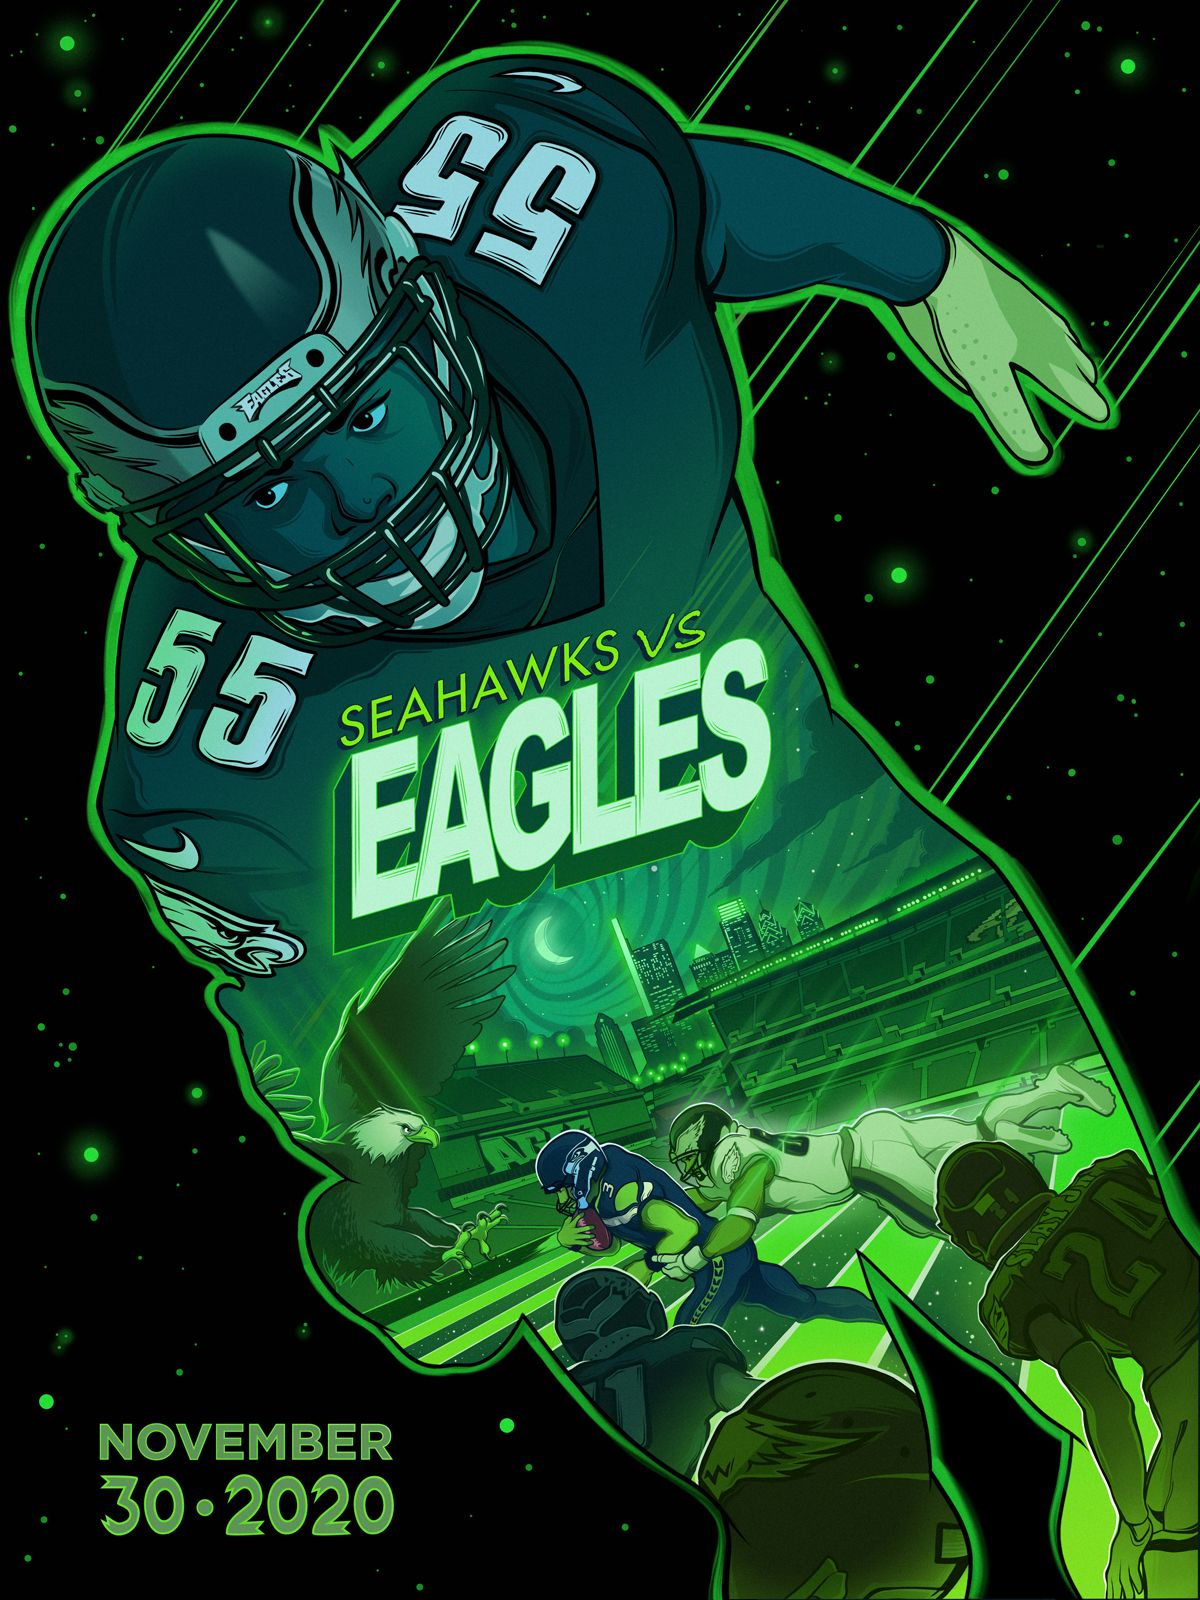 Week 12: Seahawks vs. Eagles